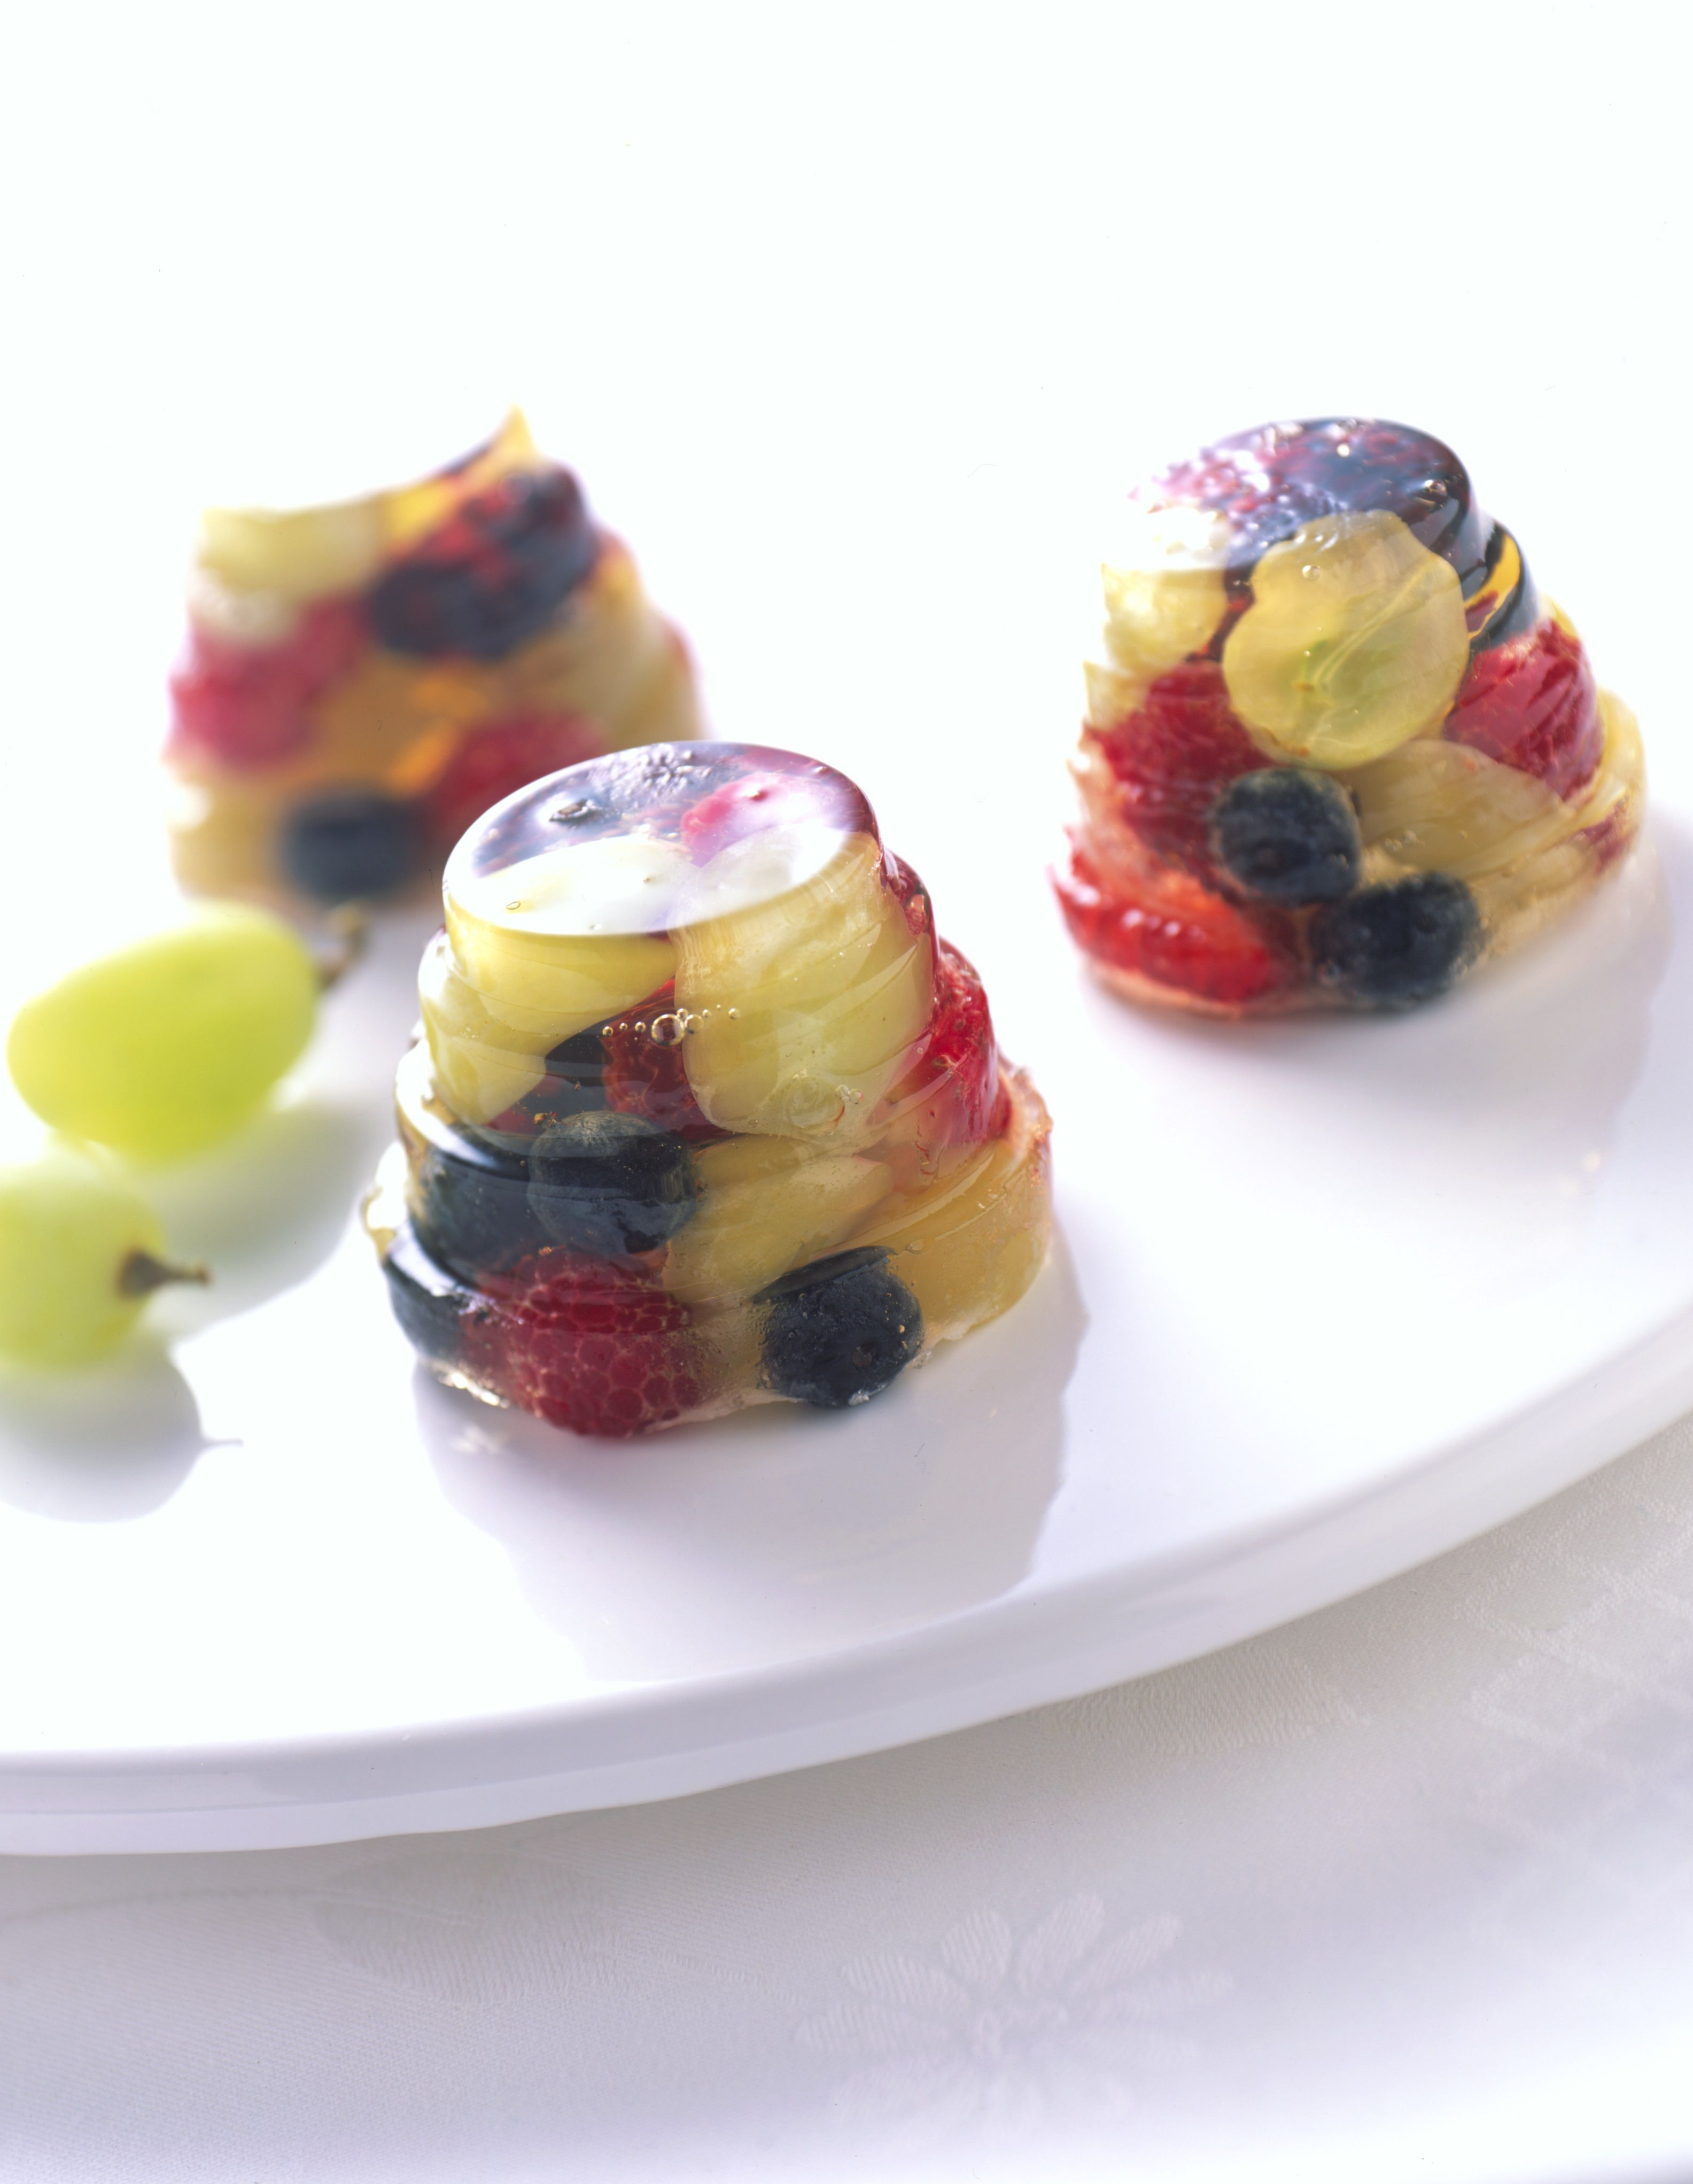 These Sparkling Grape and Berry Jells packed with fresh Grapes from California are always a summertime favorite.